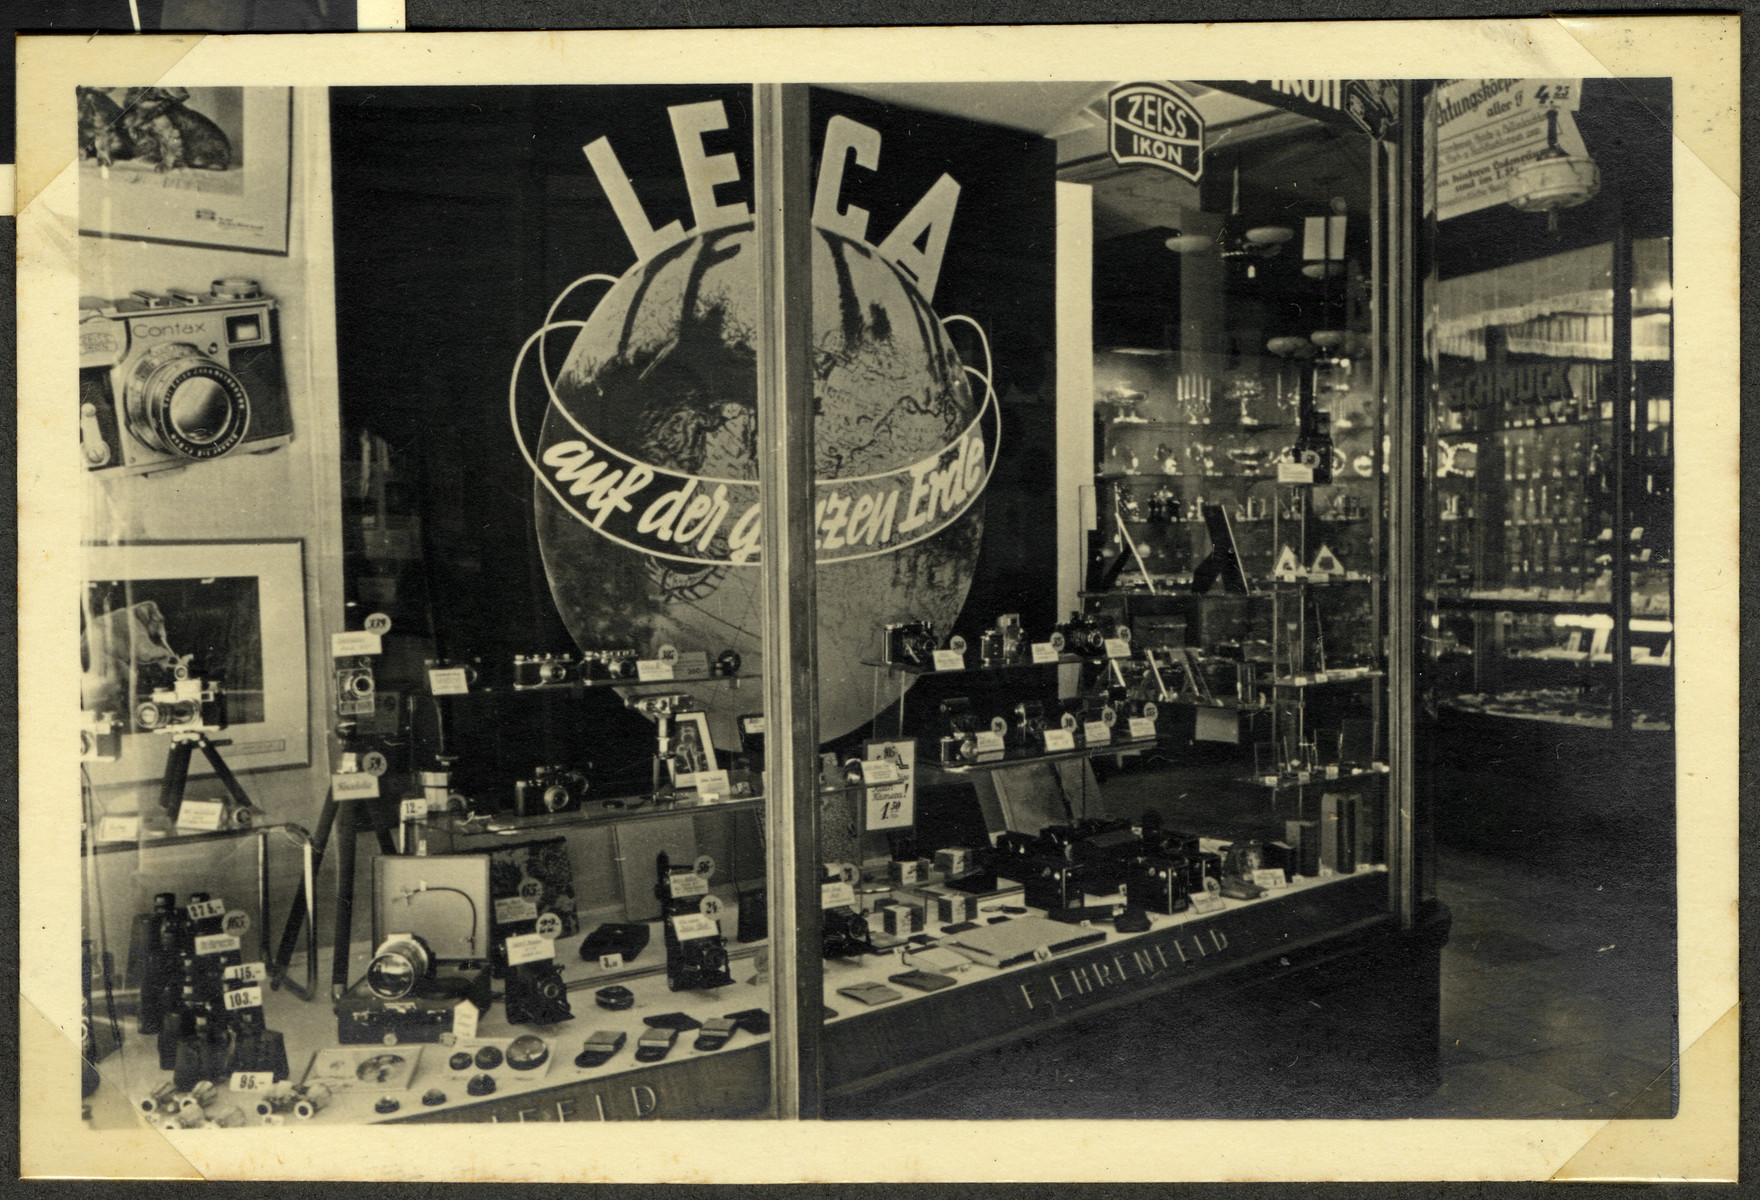 View of the Leica display window in the Ehrenfeld's gift shop, Haus der Geschenke, the largest distributor of most electronics in Germany.